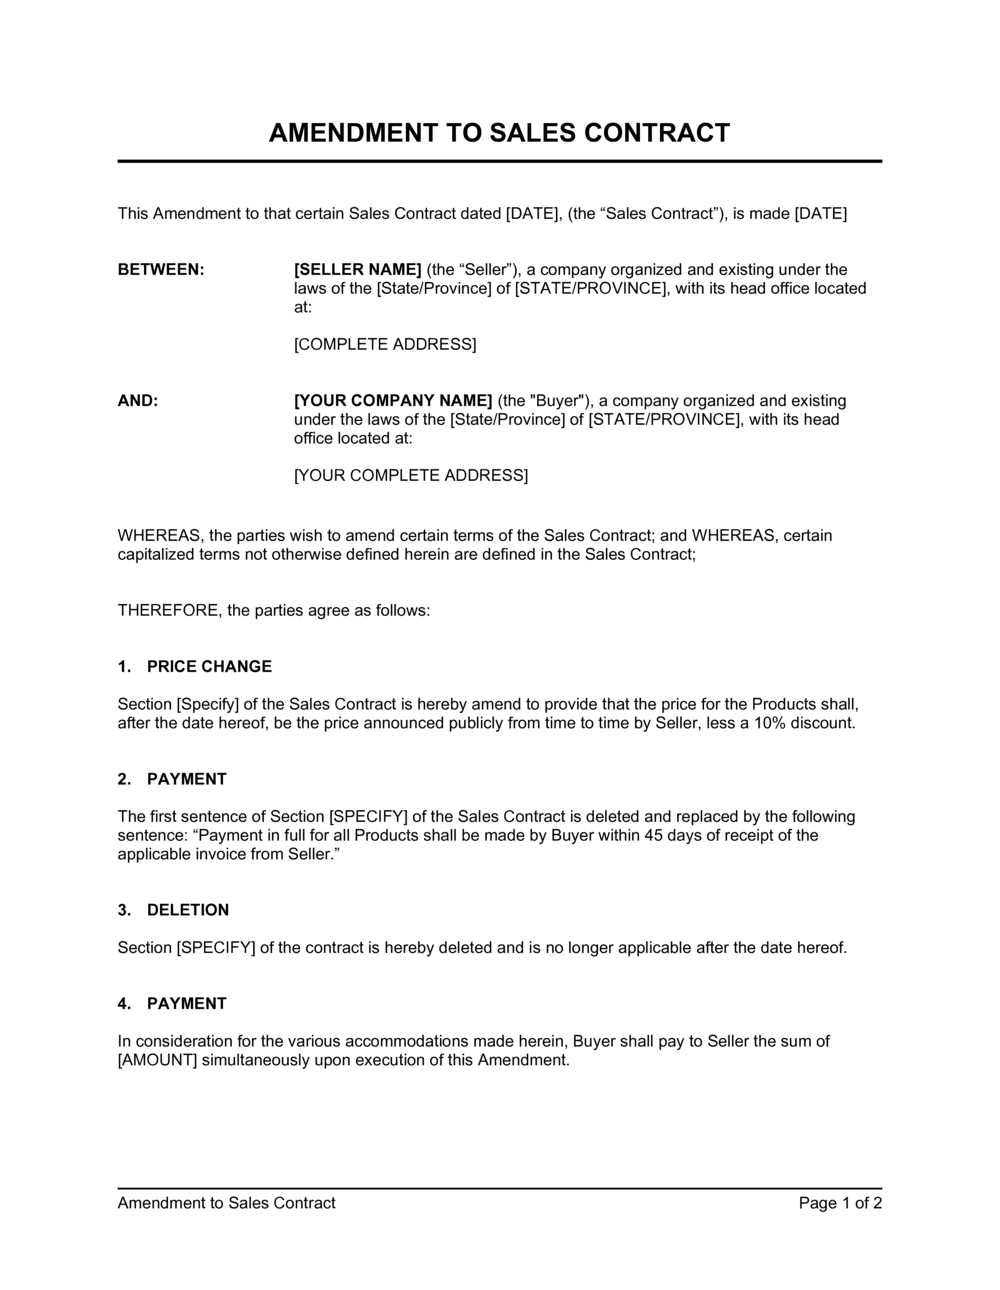 Business-in-a-Box's Amendment to Sales Contract Template